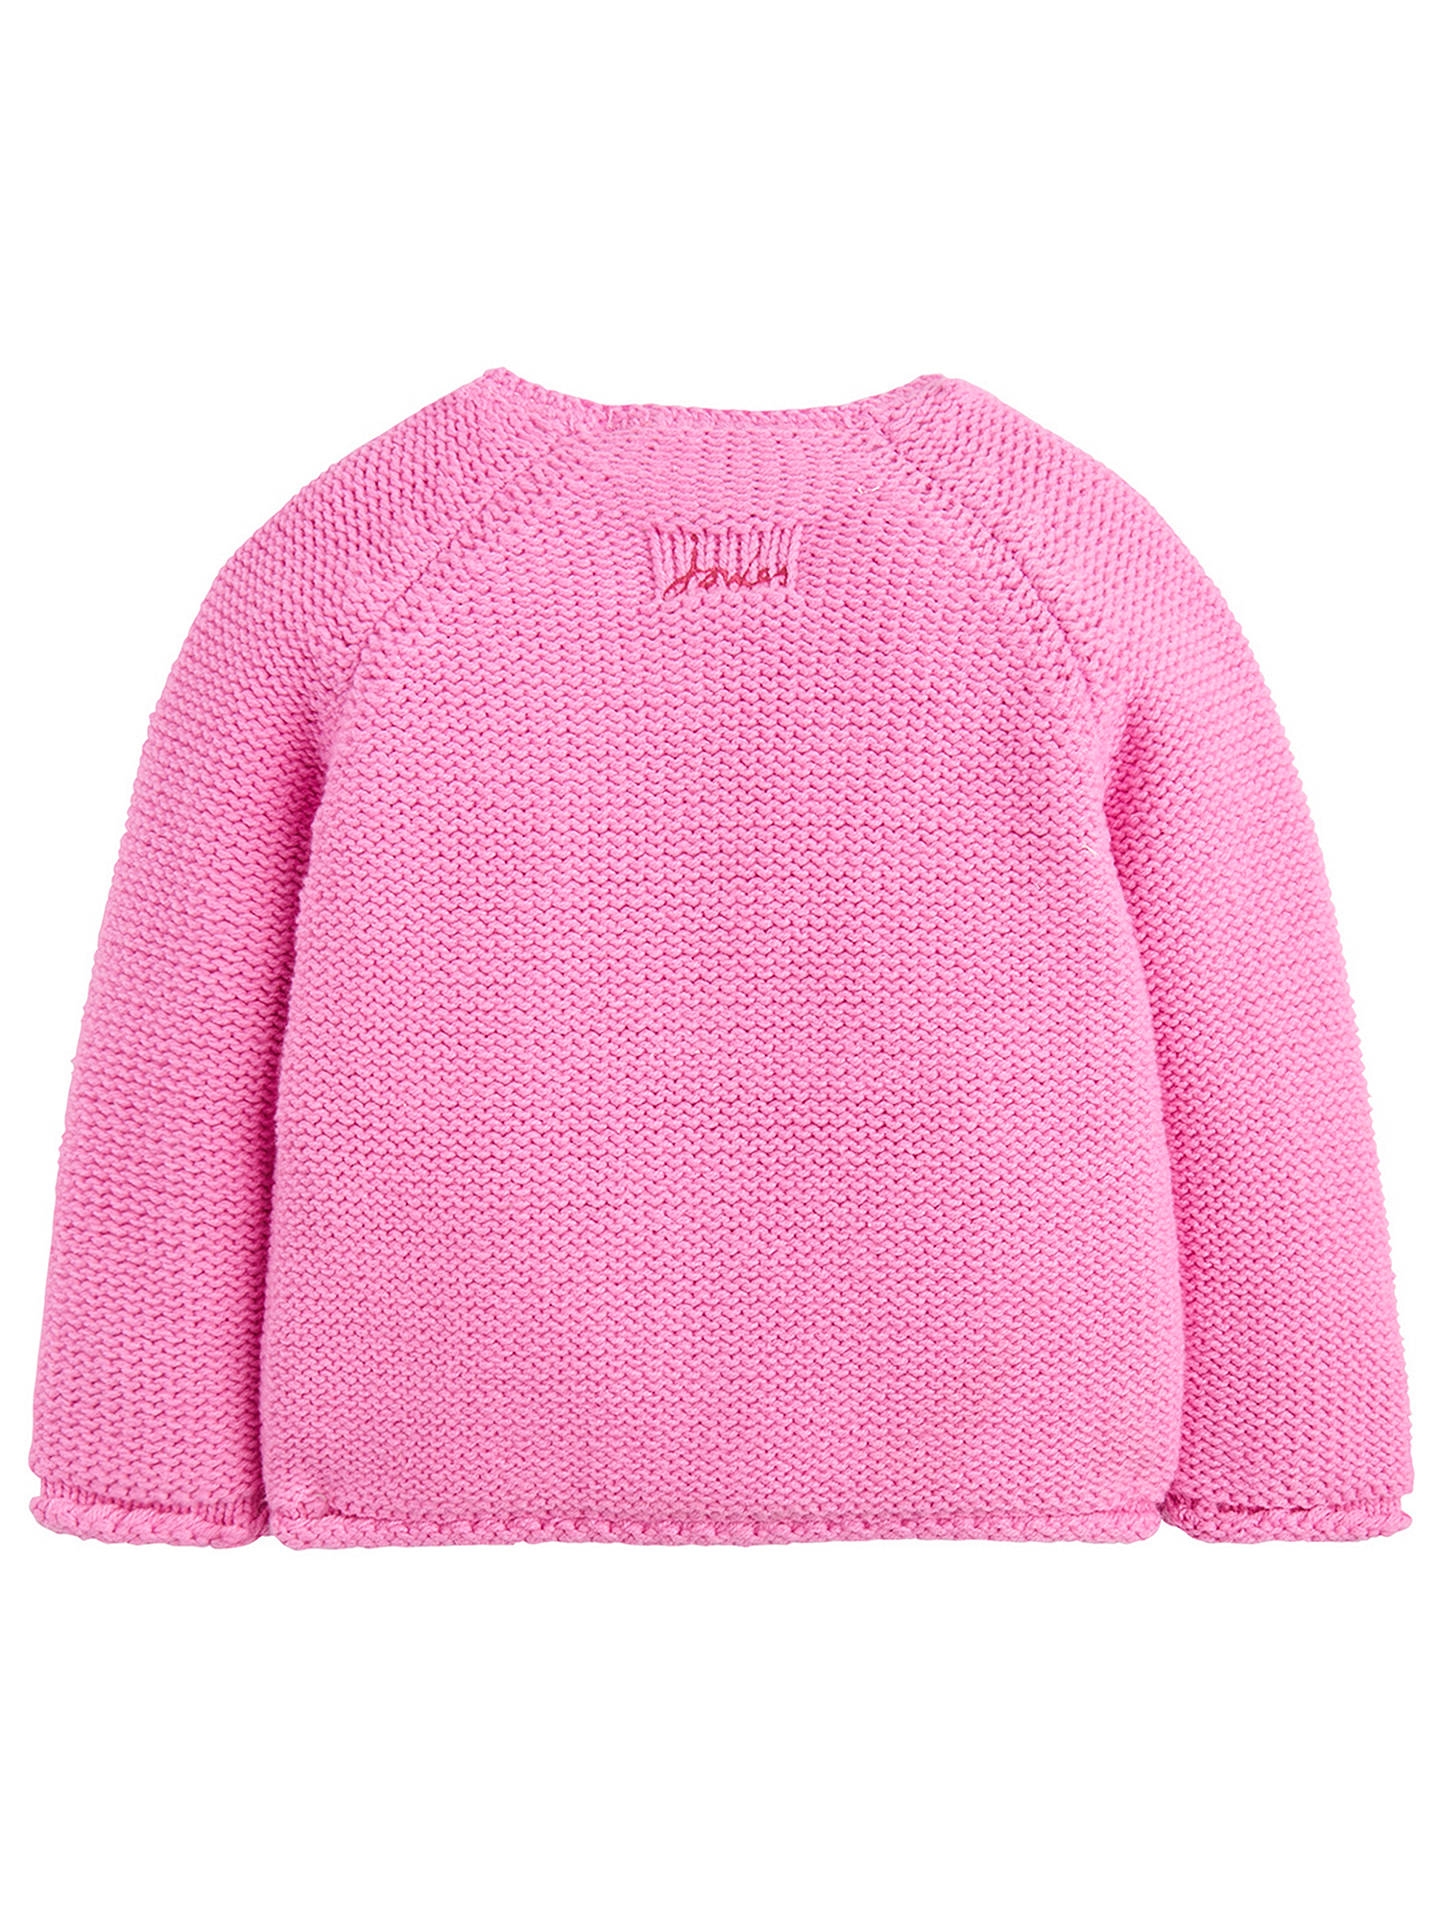 Buy Baby Joules Dorrie Mouse Cardigan, Pink, 0-3 months Online at johnlewis.com